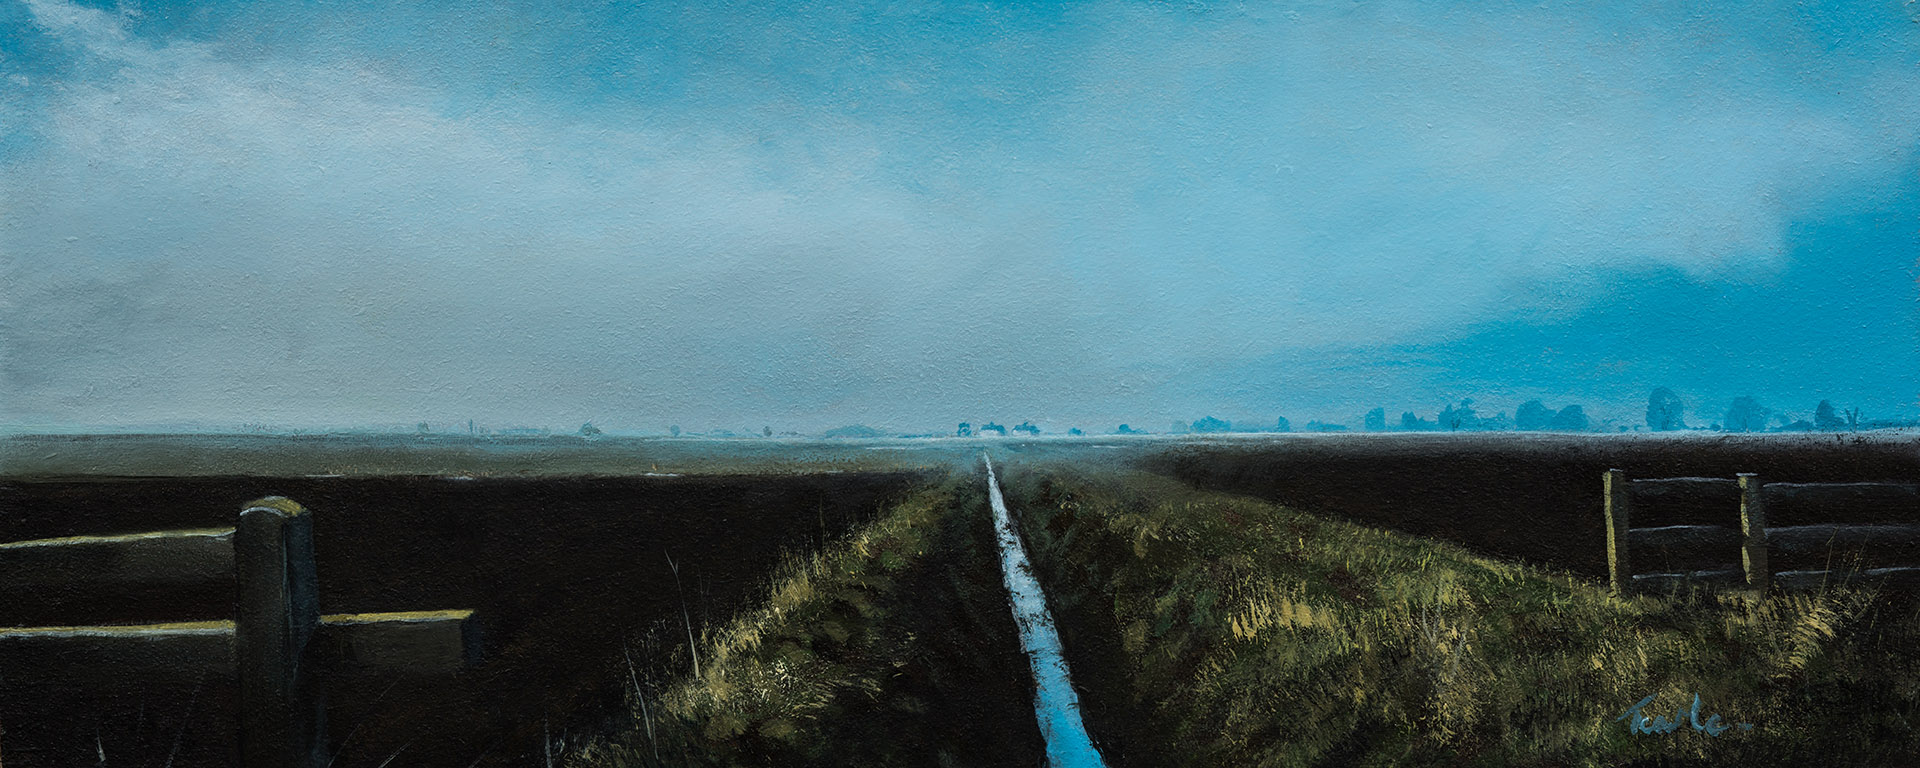 Ditch near Etton - Nick Tearle Fenland Artist